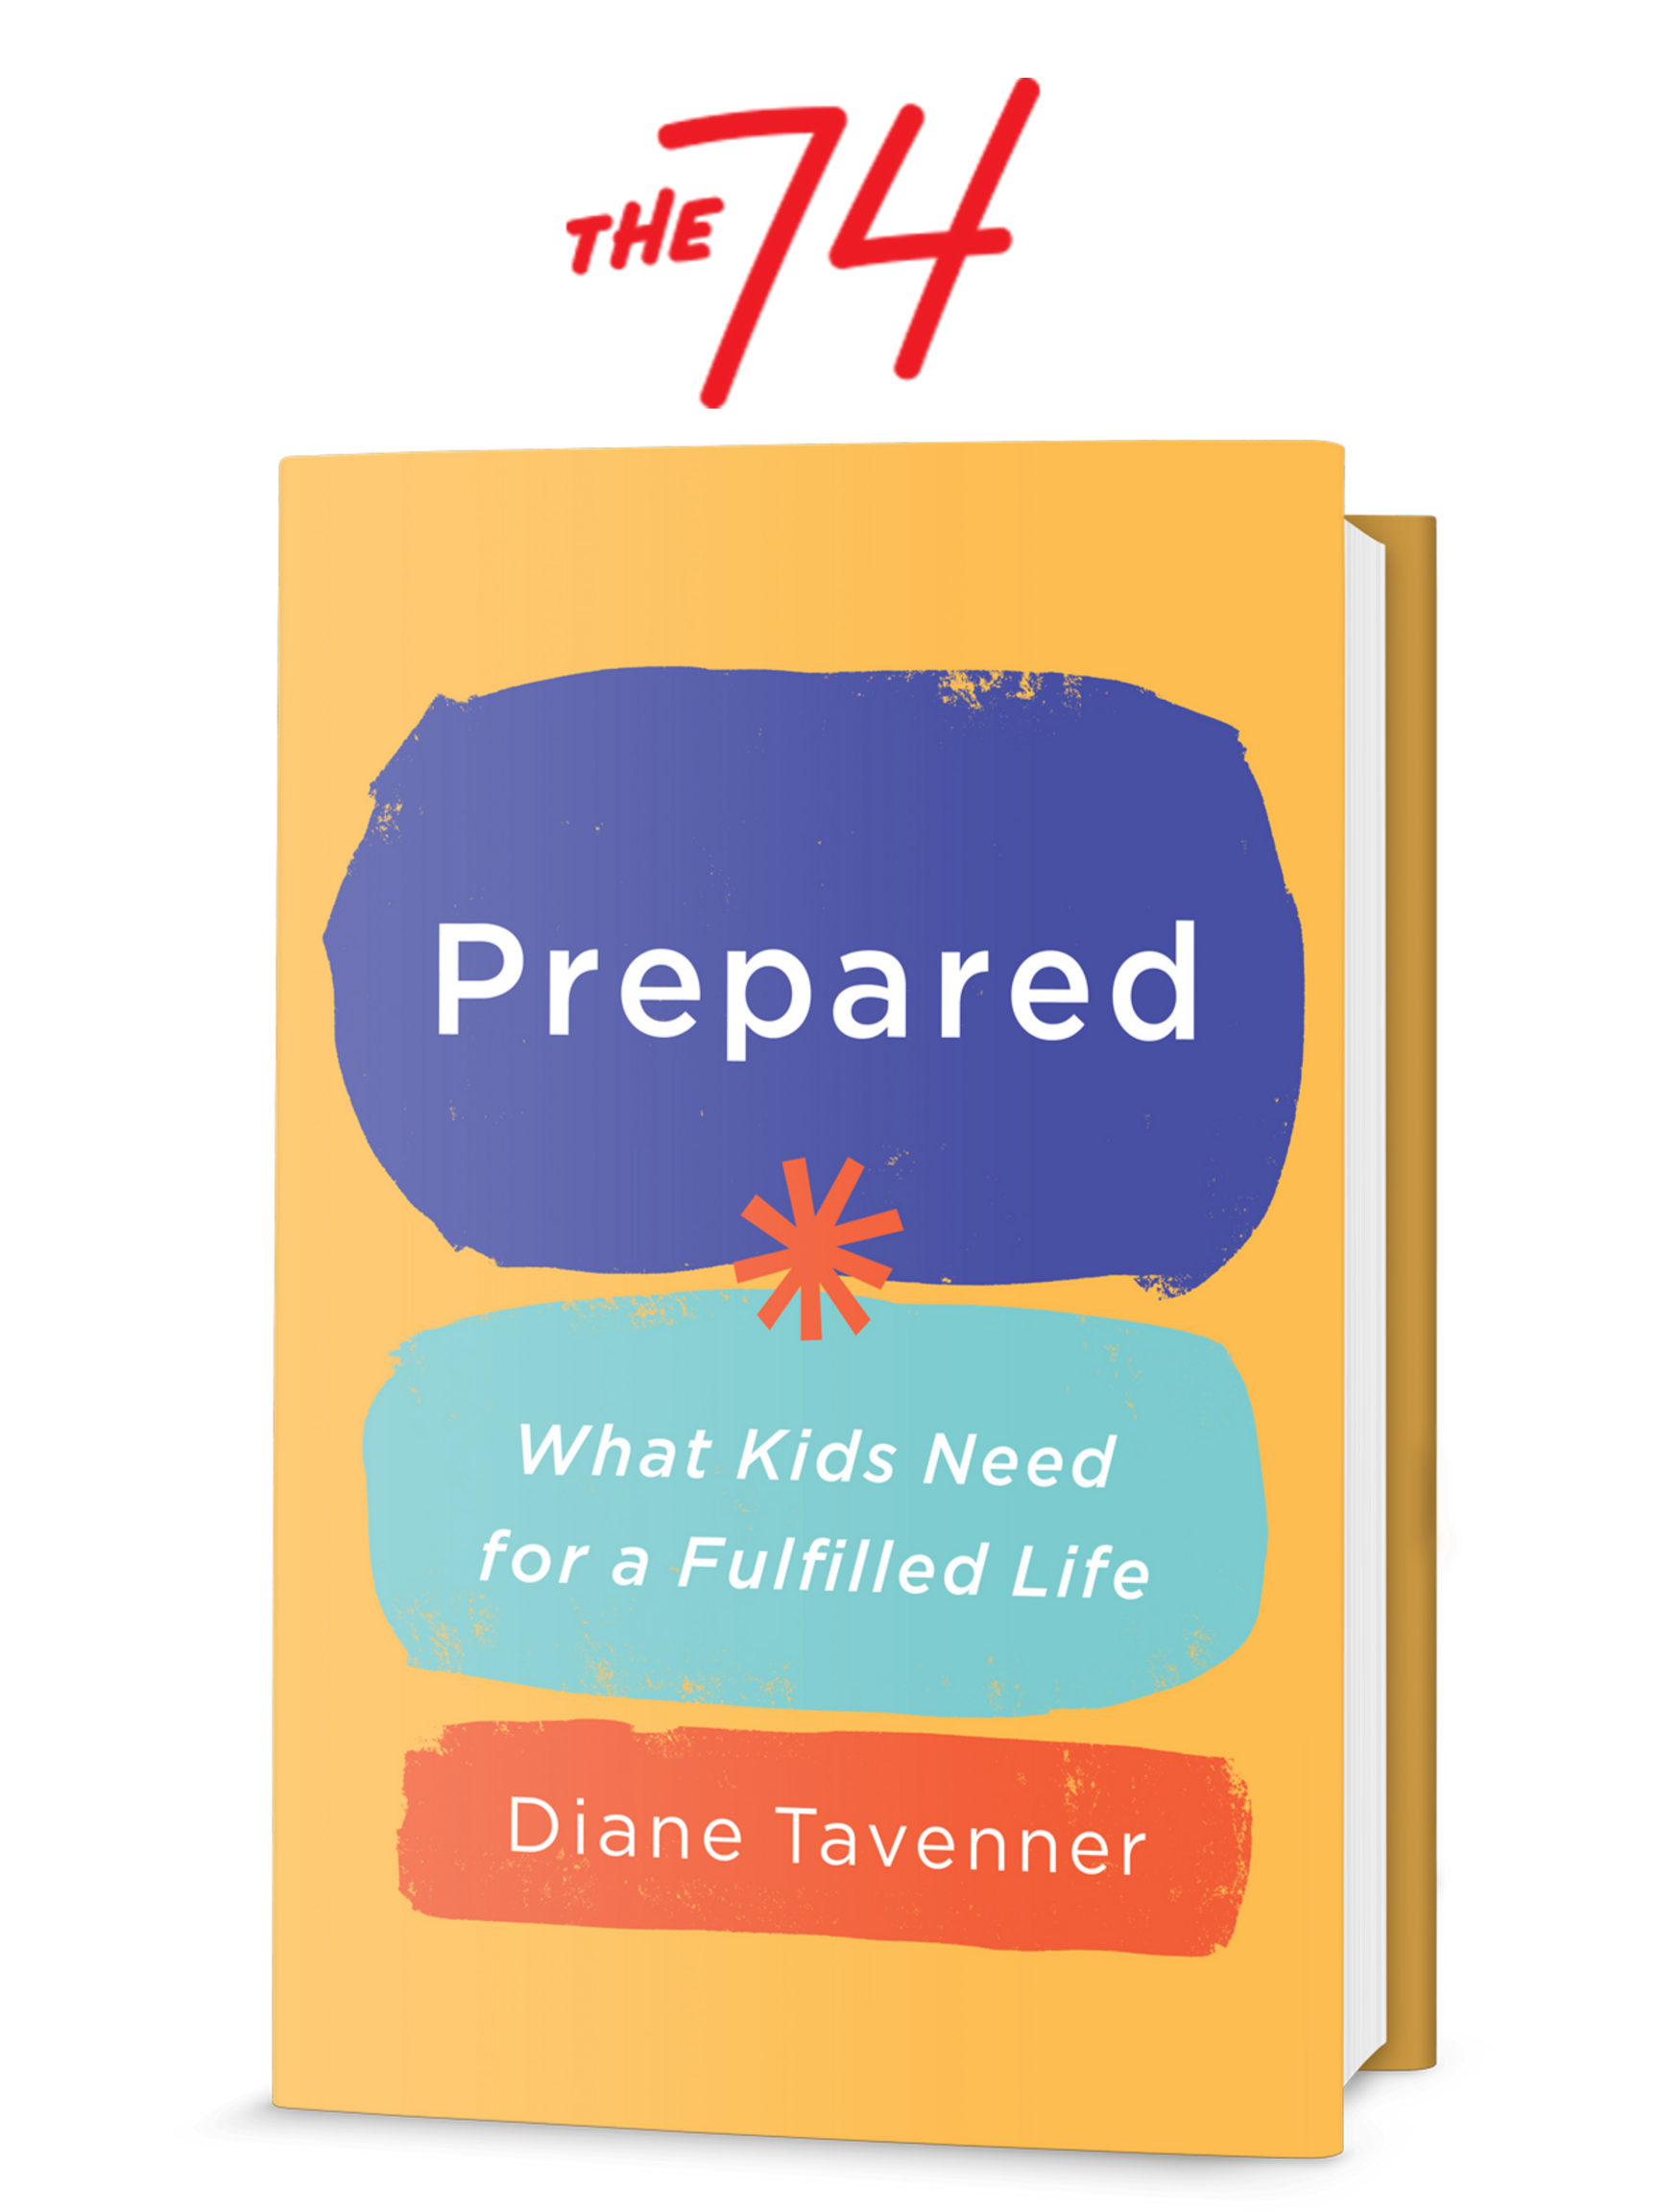 Featured image for The 74 Million: Book Excerpt of 'Prepared: What Kids Need for a Fulfilled Life'